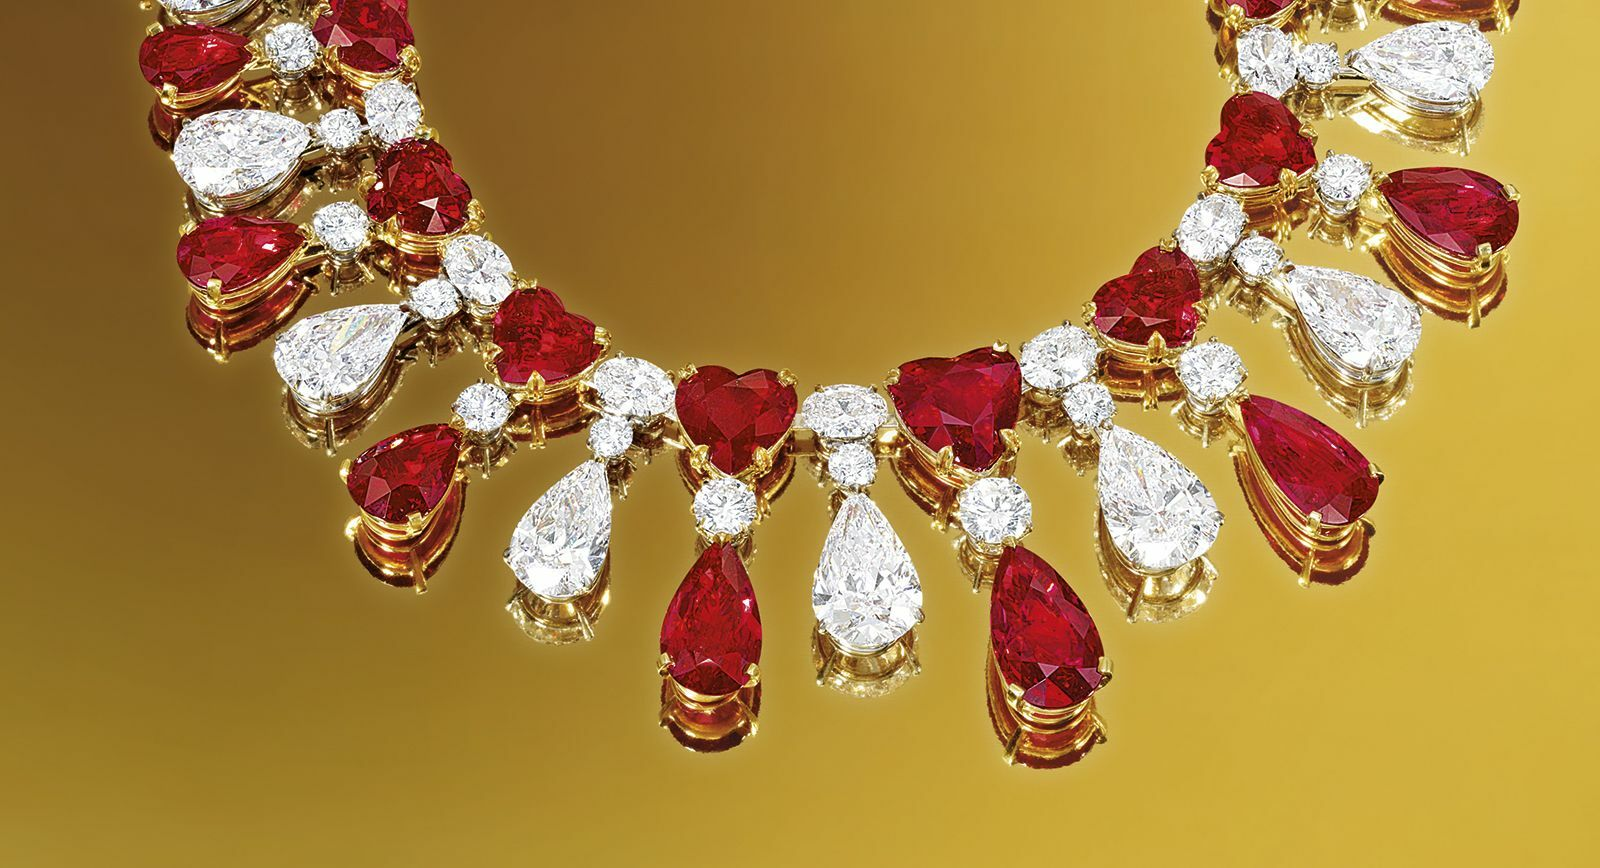 Ruby and diamond necklace by James W Currens for Faidee